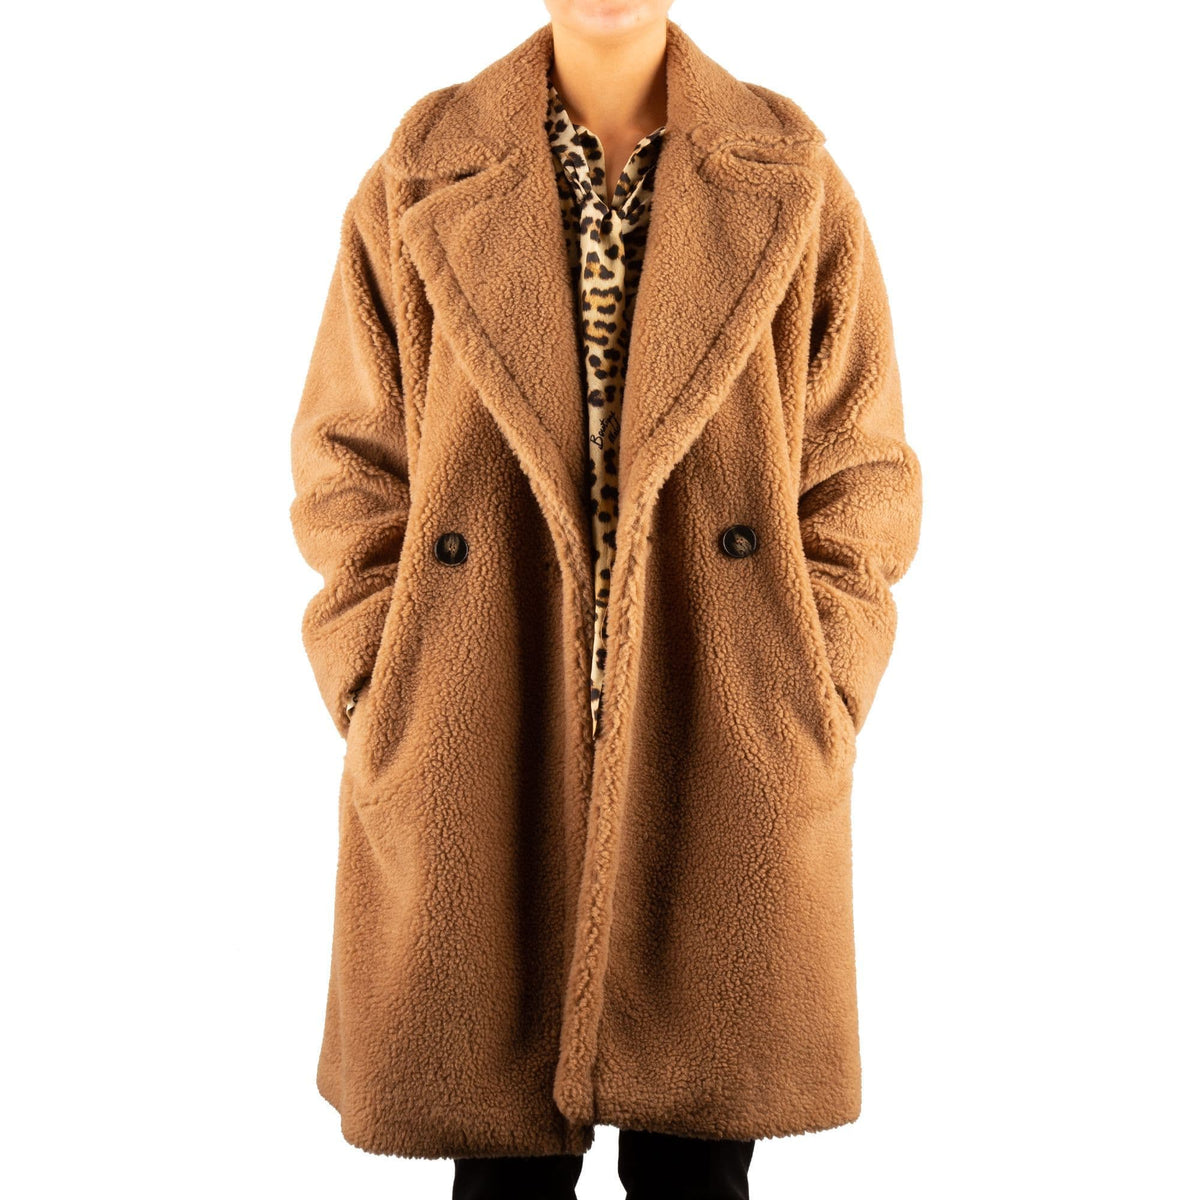 Marella Double-Breasted Teddy Coat